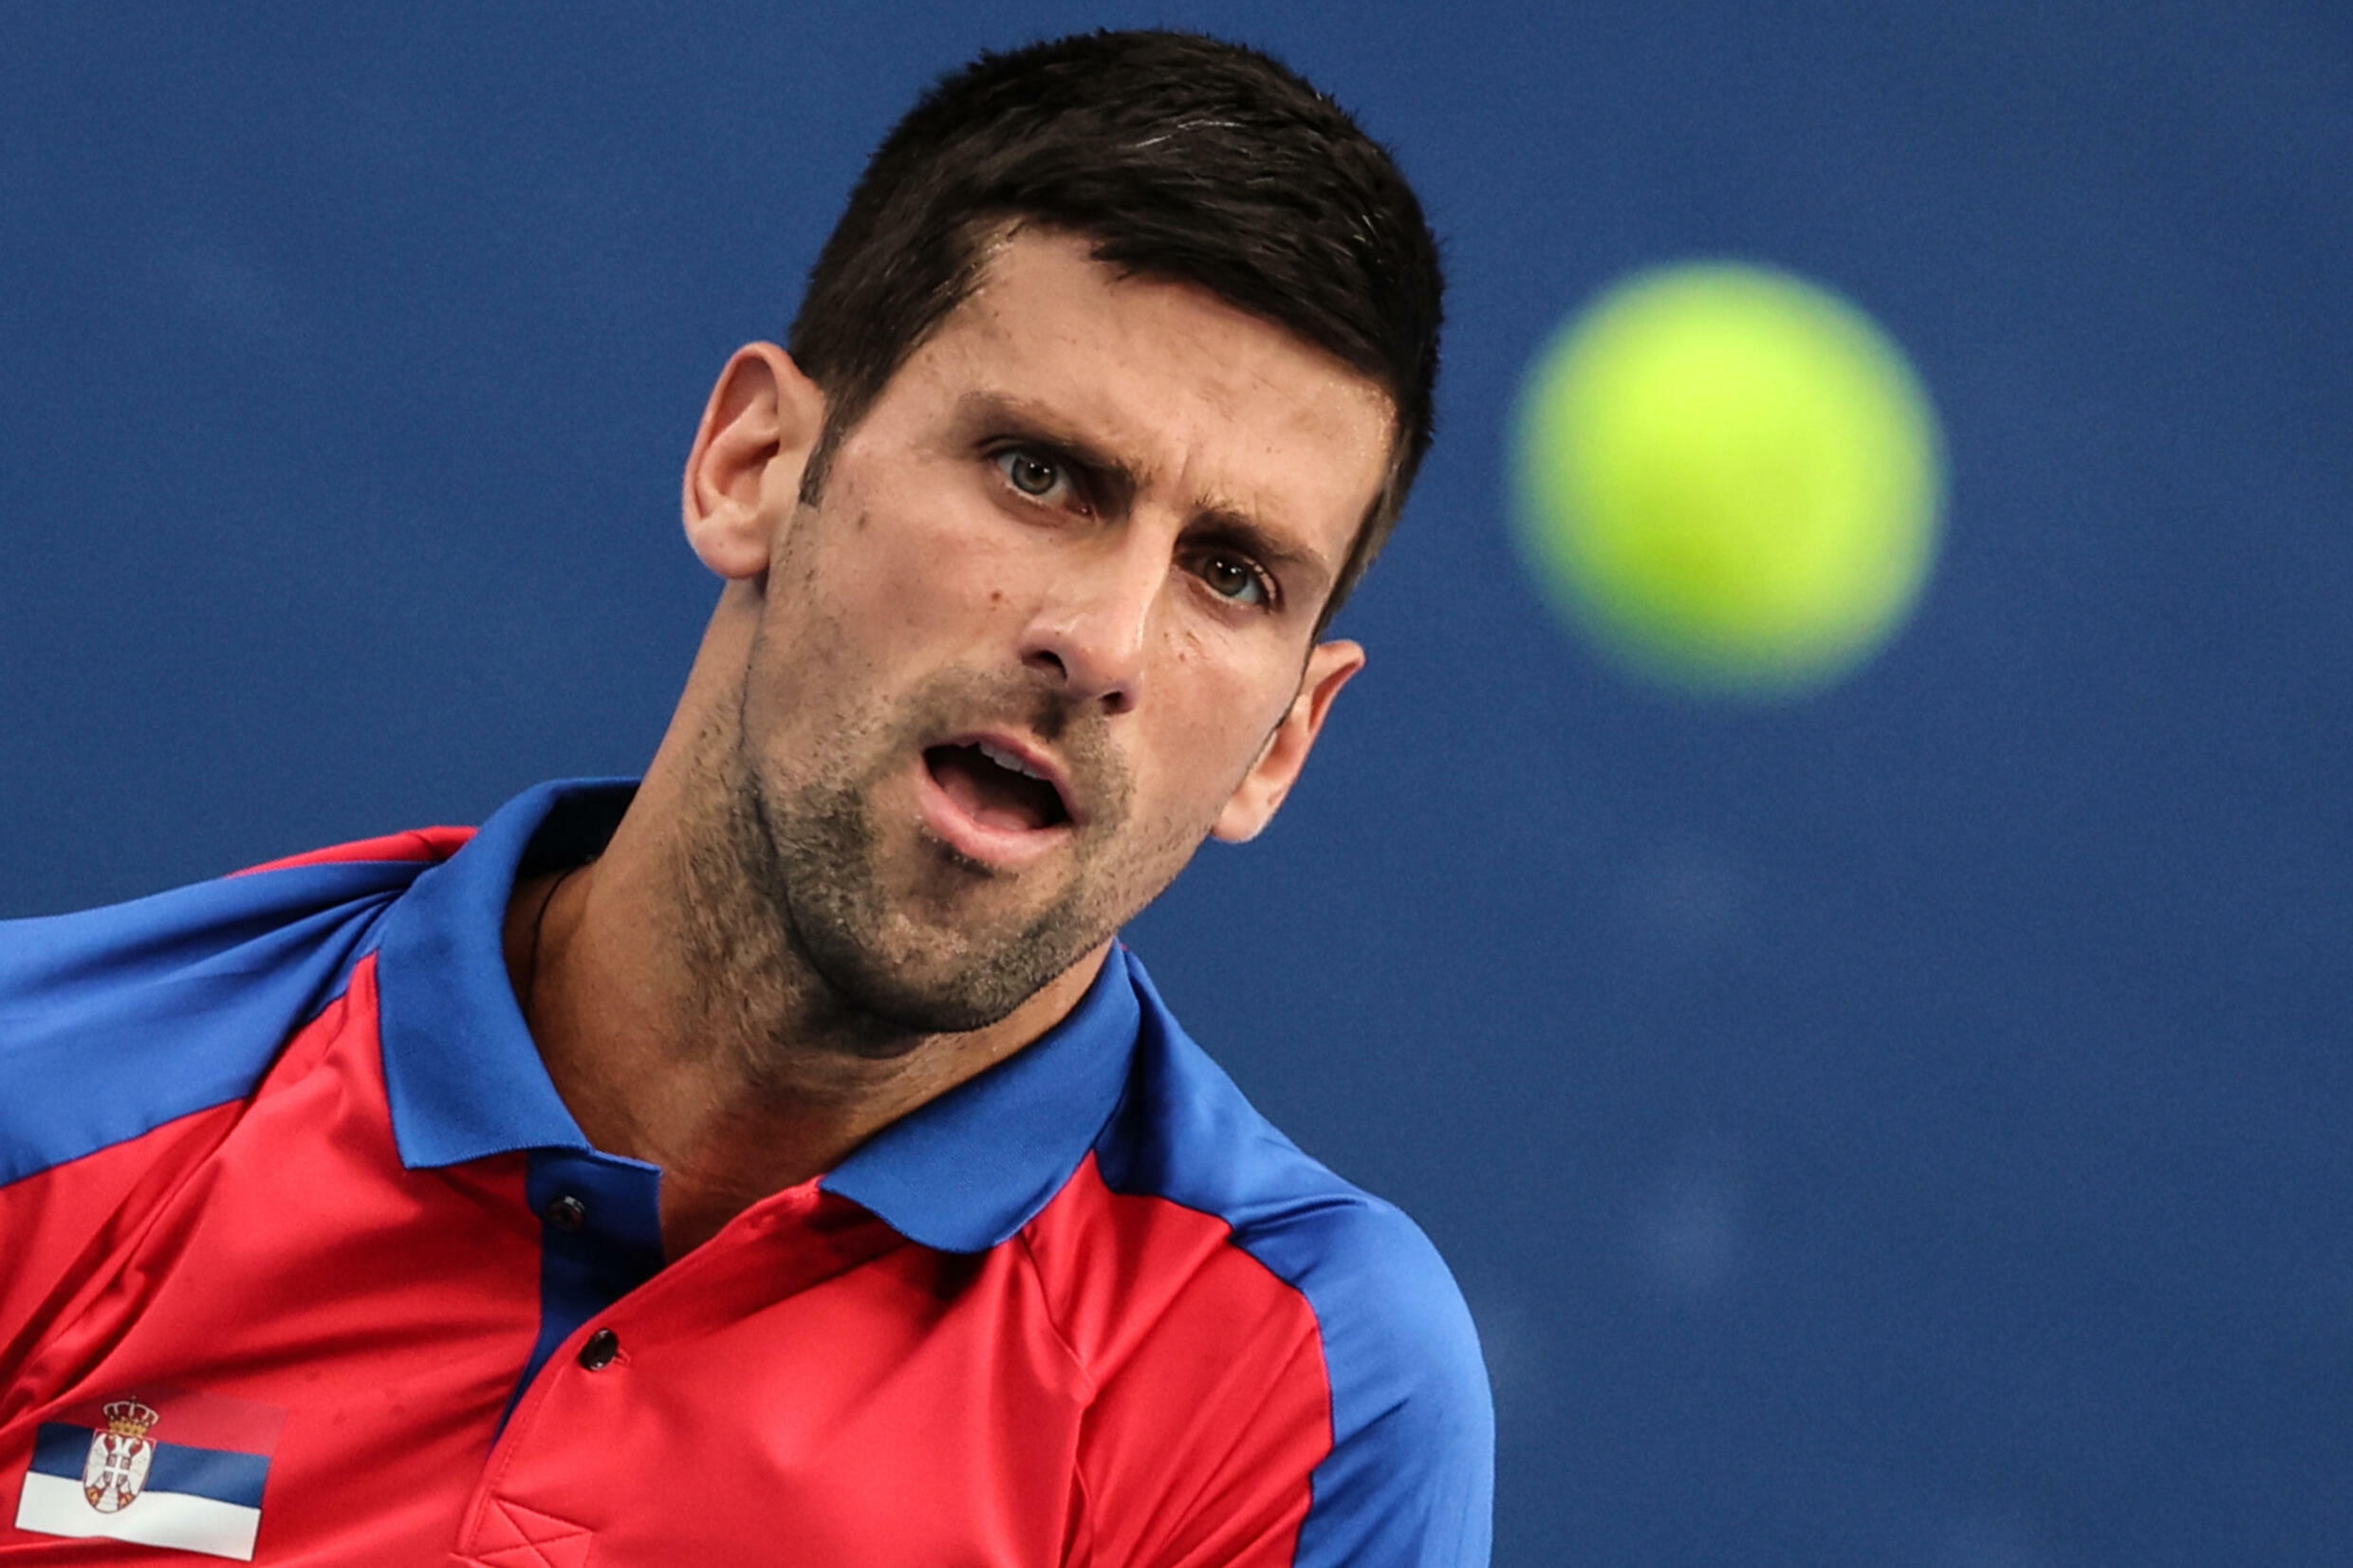 Serbia's Novak Djokovic is looking to complete a calendar-year Grand Slam by winning the US Open, which begins Monday in New York